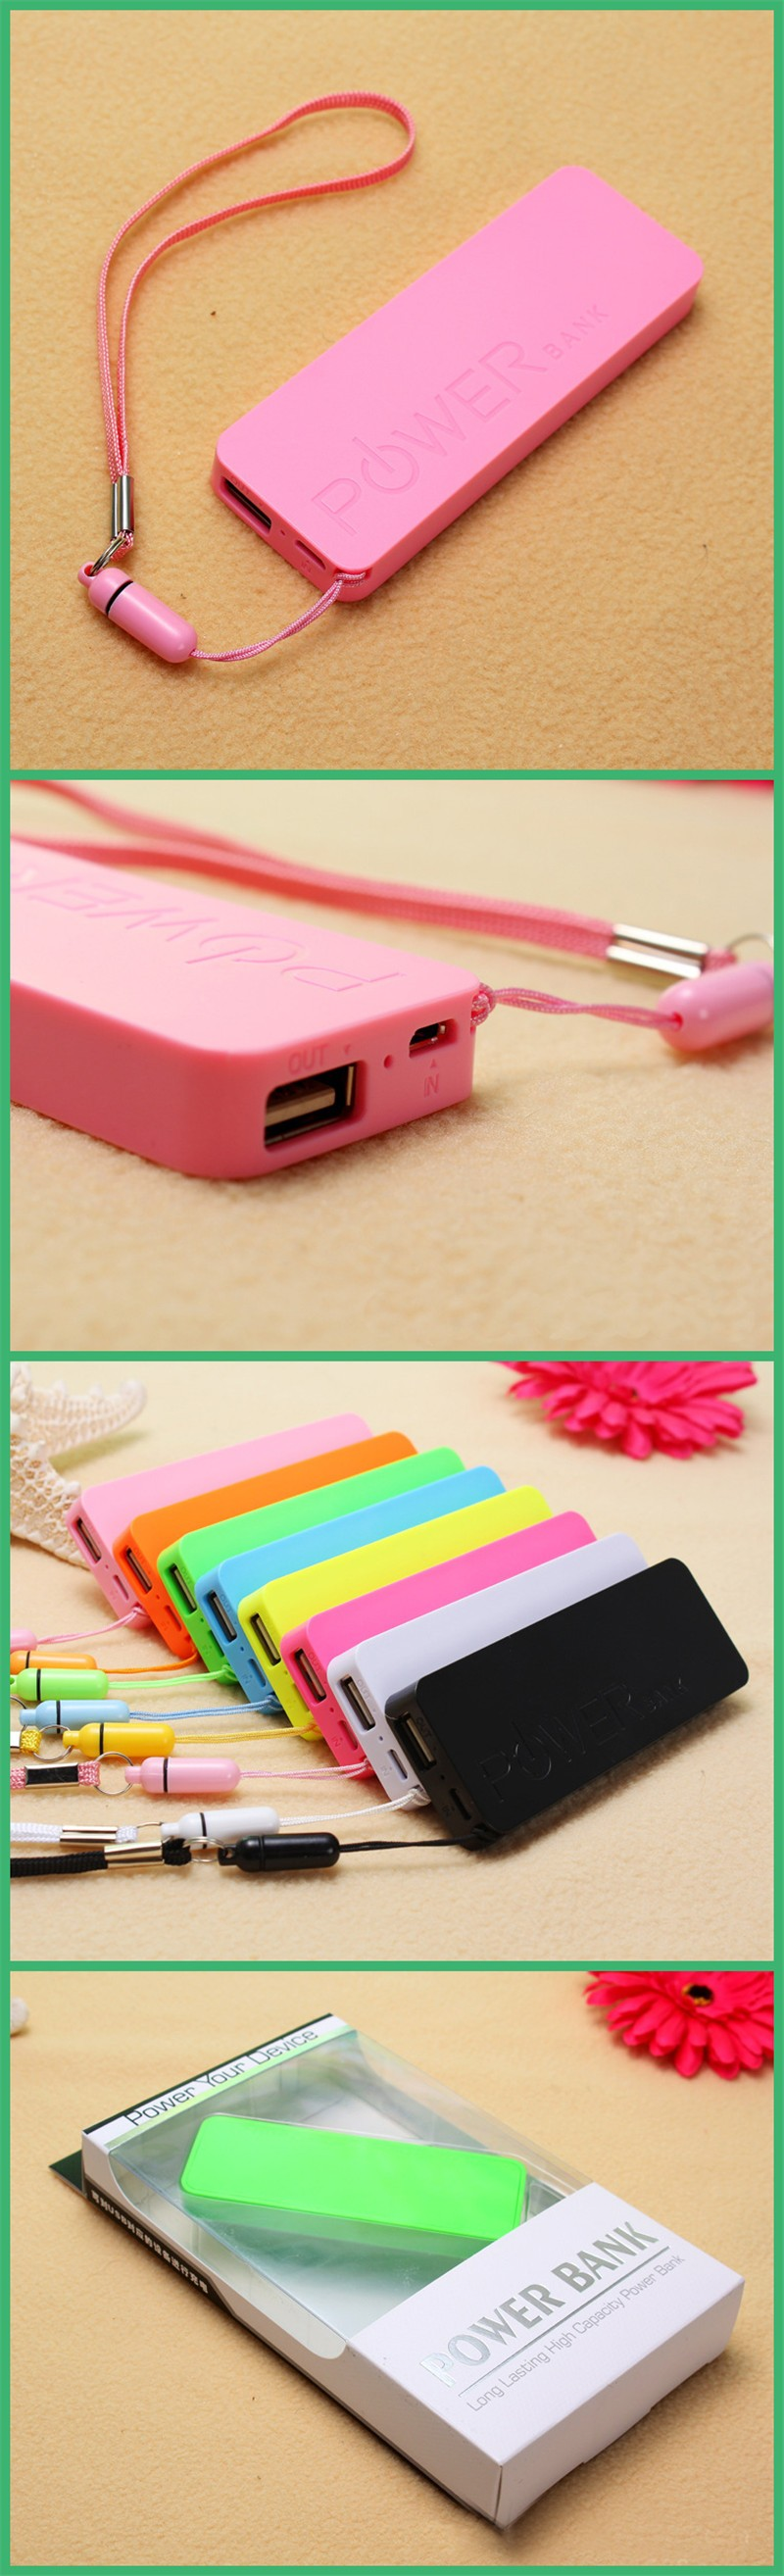 Laptop Power Bank Keychain with replaceable battery Model JEC-019PB